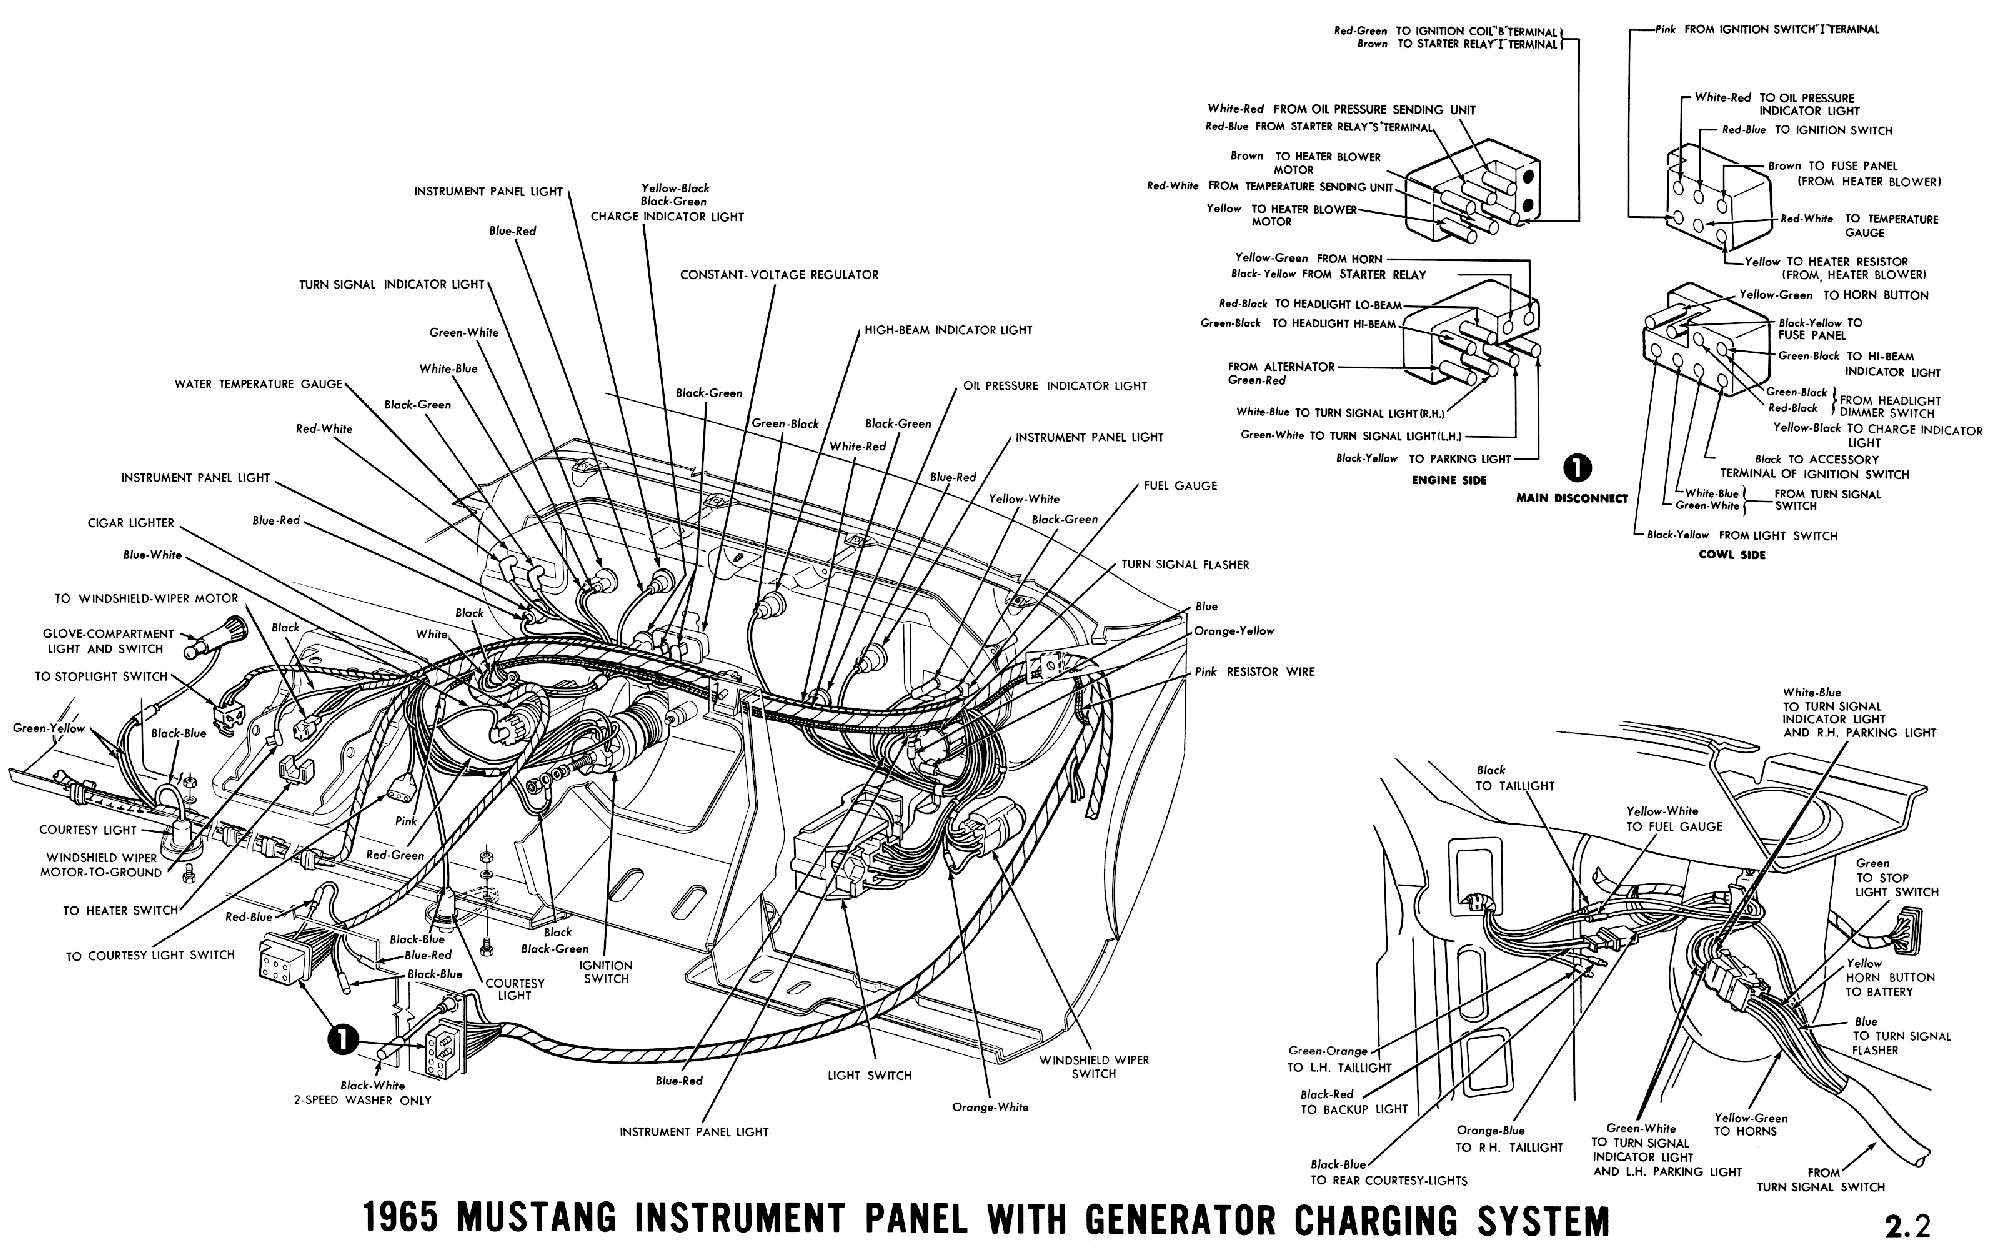 1965 Mustang Wiring Diagrams Average Joe Restoration Ac Generator Circuit Diagram Free Download Schematic Instrument Panel With Charging System Pictorial Ford